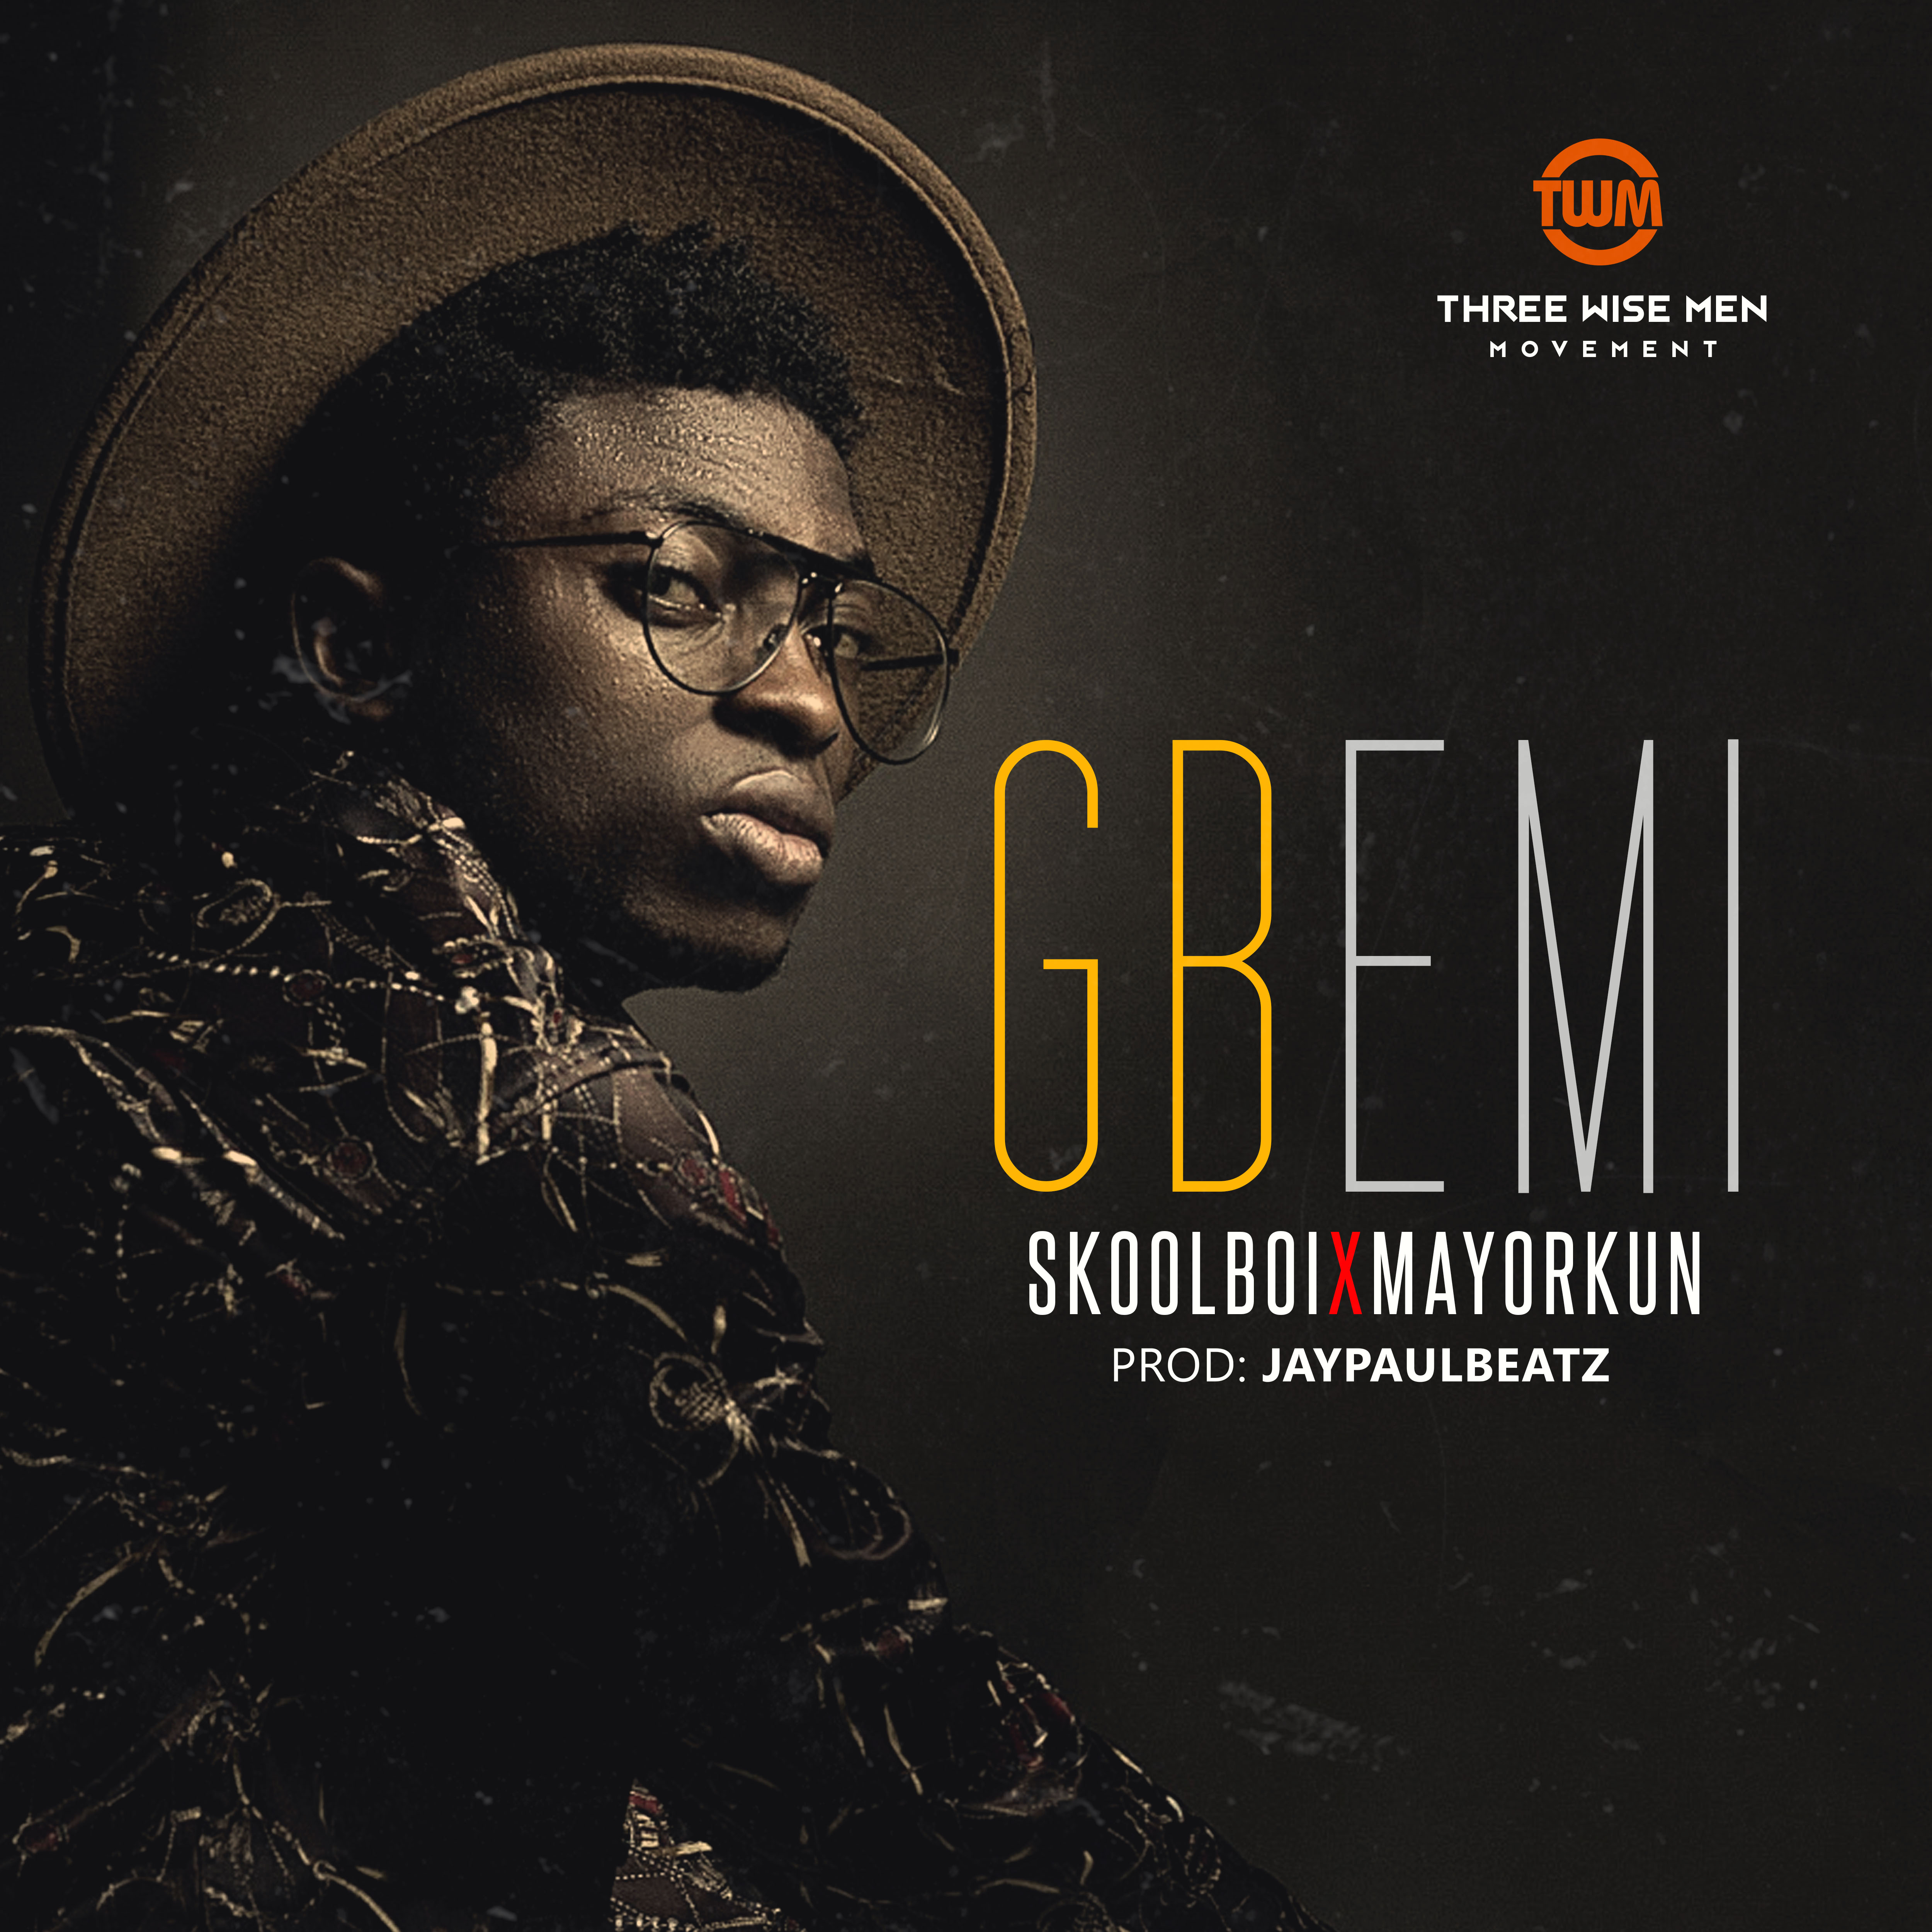 Skool Boi ft. Mayorkun – Gbemi (Prod. by JayPaul Beatz)